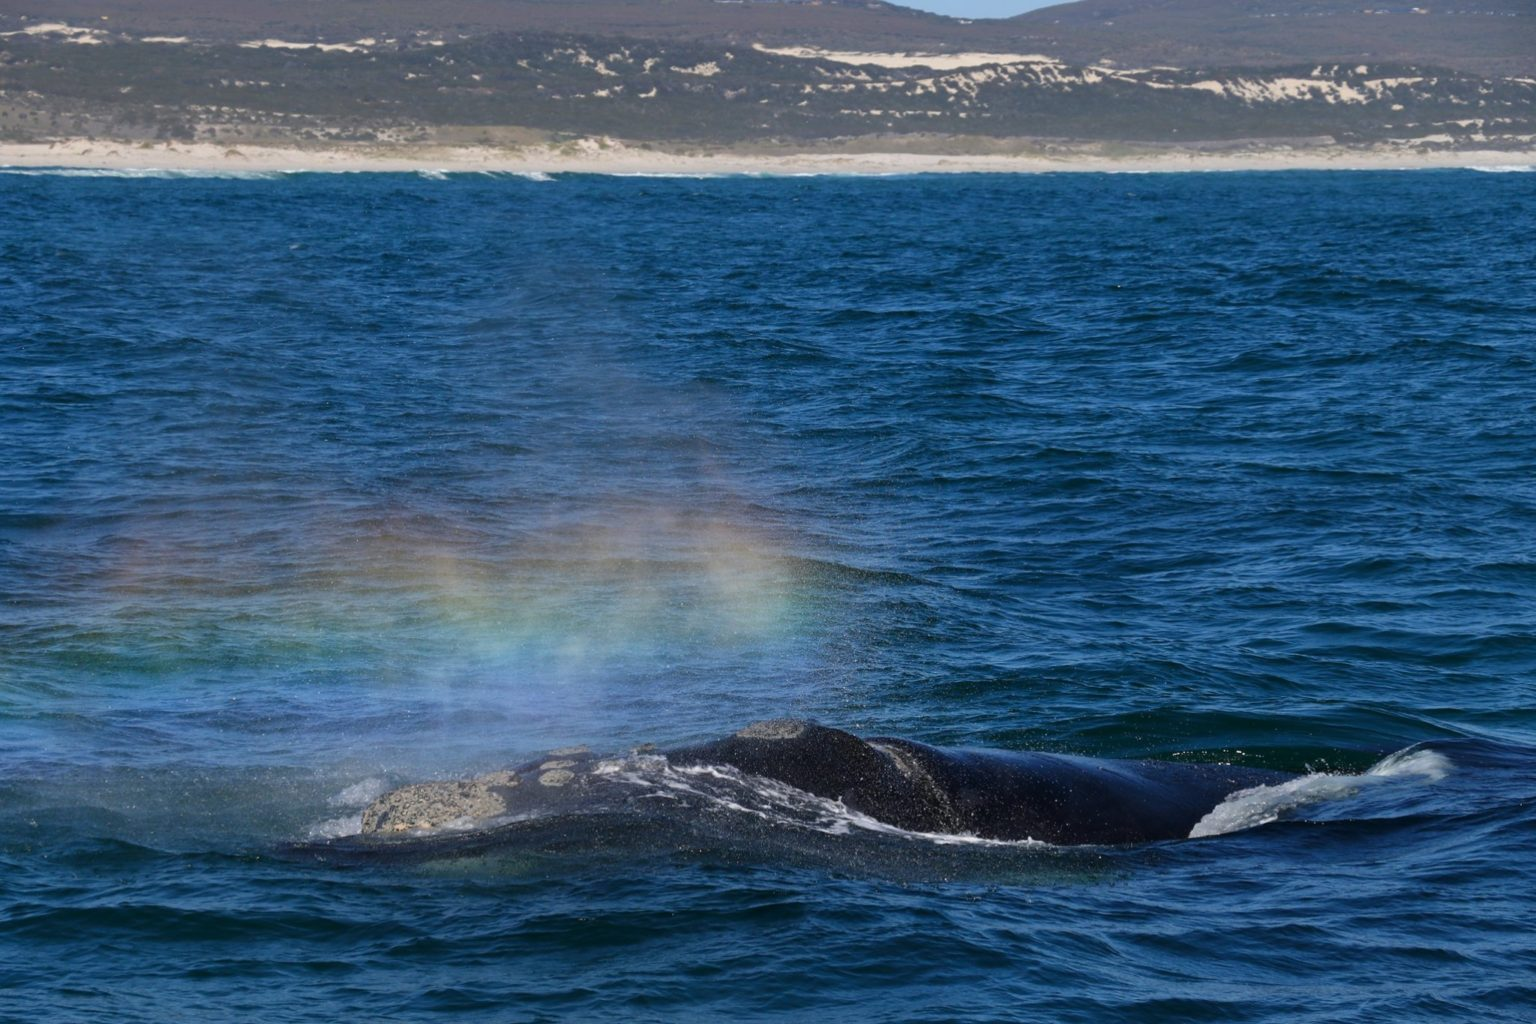 Whale watching Hermanus falls within the months of winter and spring